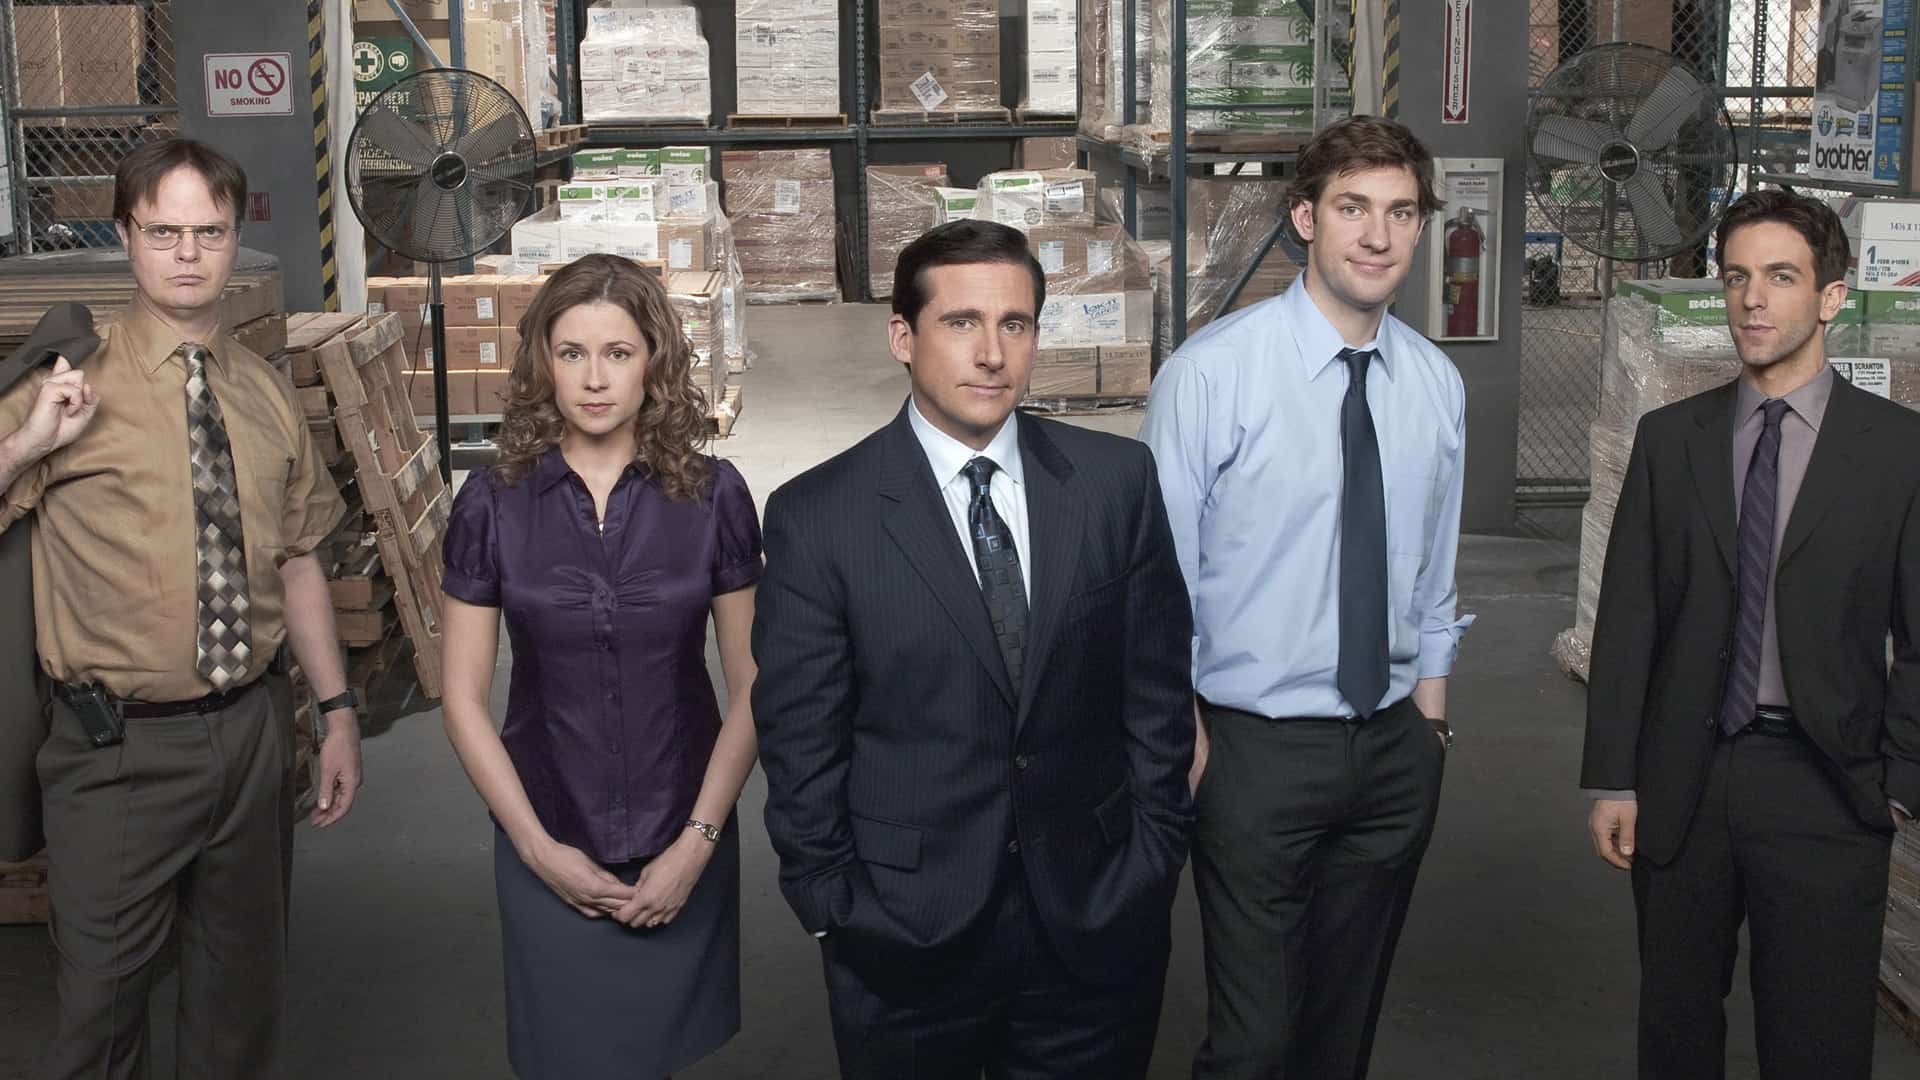 The main cast of The Office